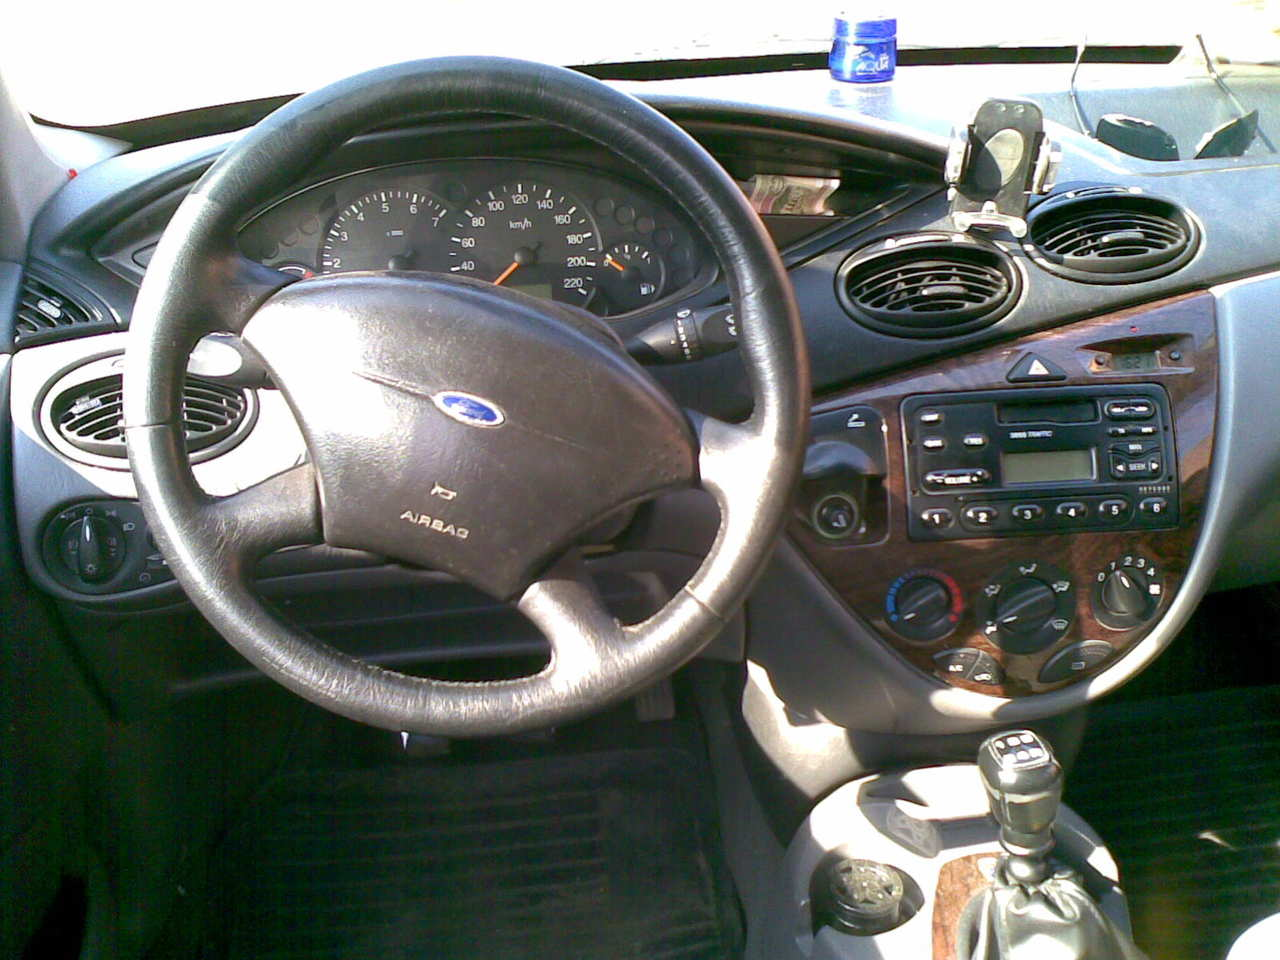 1999 ford focus for sale 1800cc diesel ff manual for sale rh cars directory net ford focus 1999 service manual ford focus 1999 manual pdf